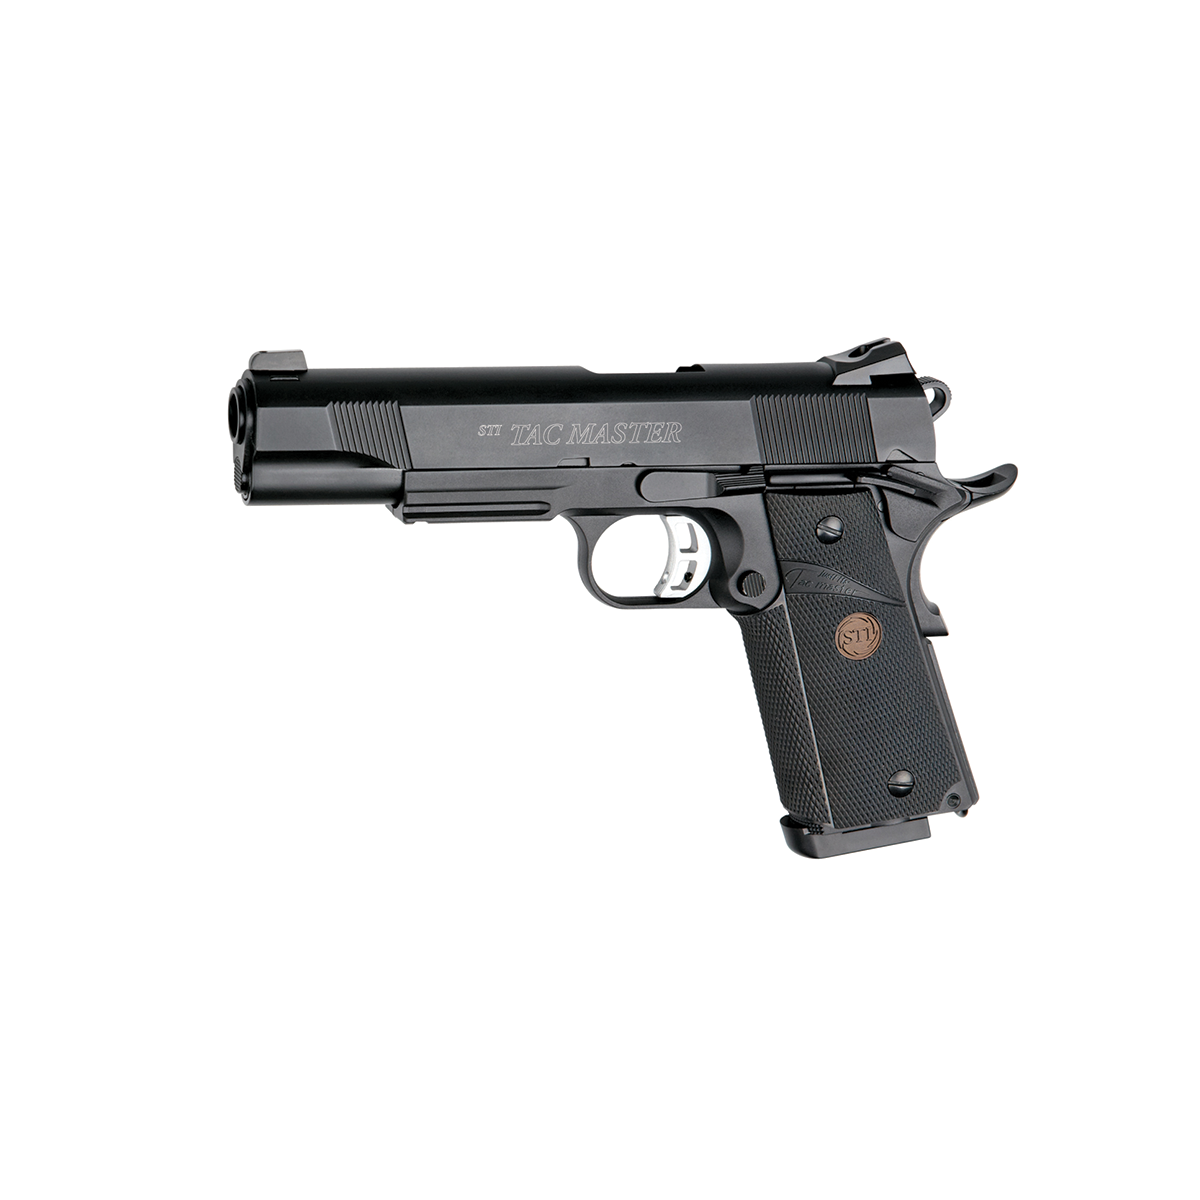 Asg - Pistola soft air - STI Tac Master 1.3j - cal . 6mm BB